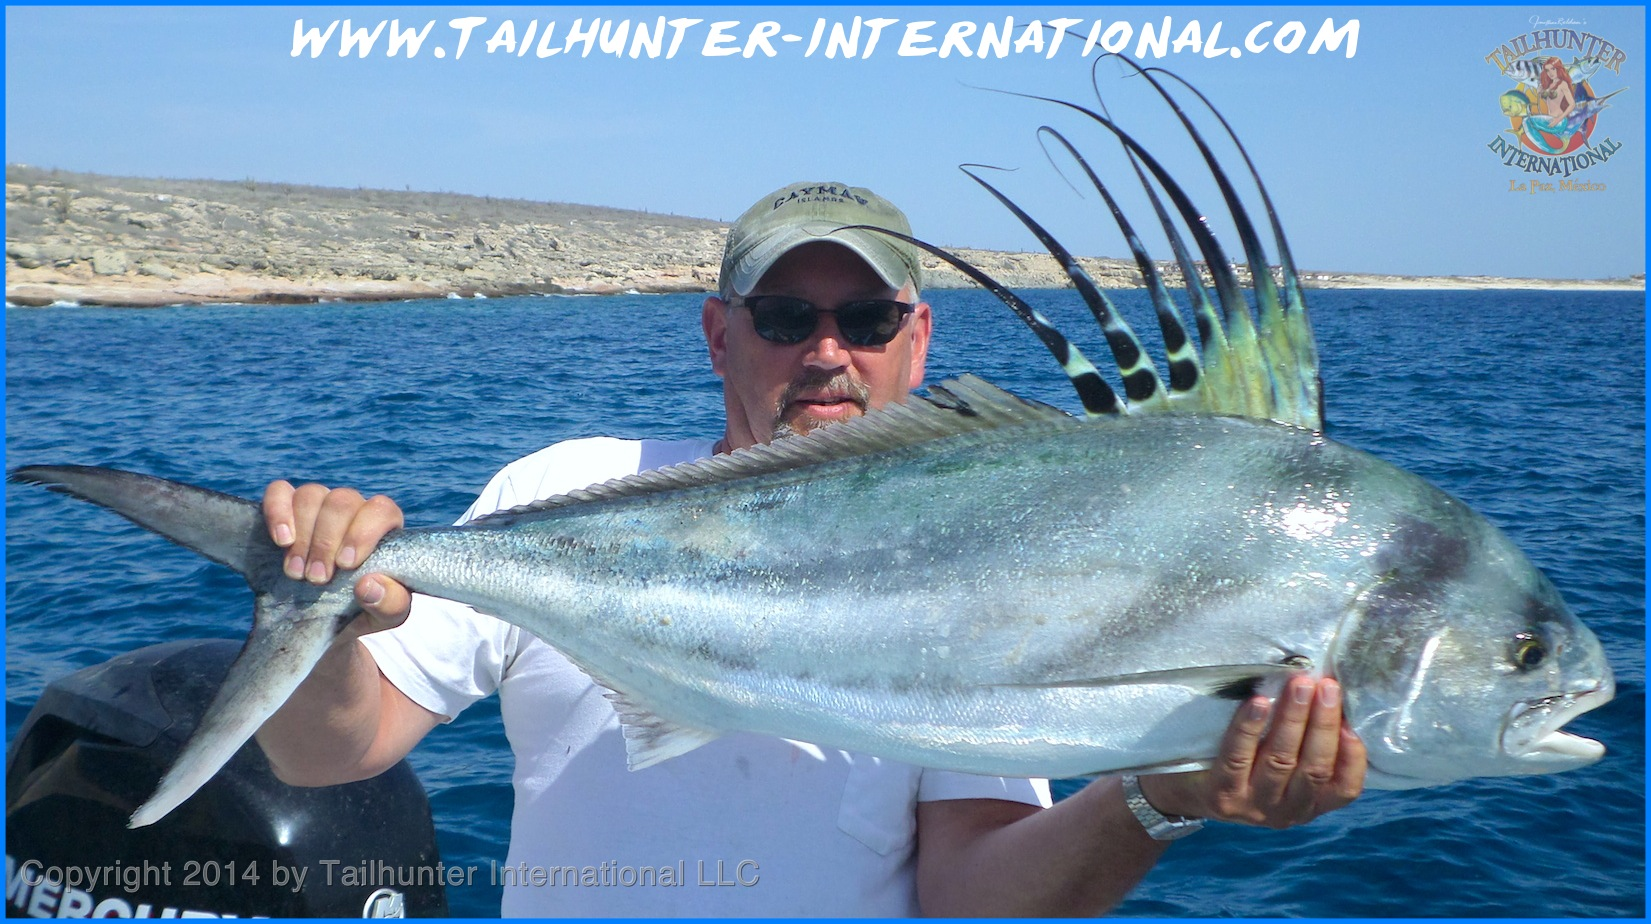 La paz las arenas fishing report from tailhunter for Los angeles fishing charters